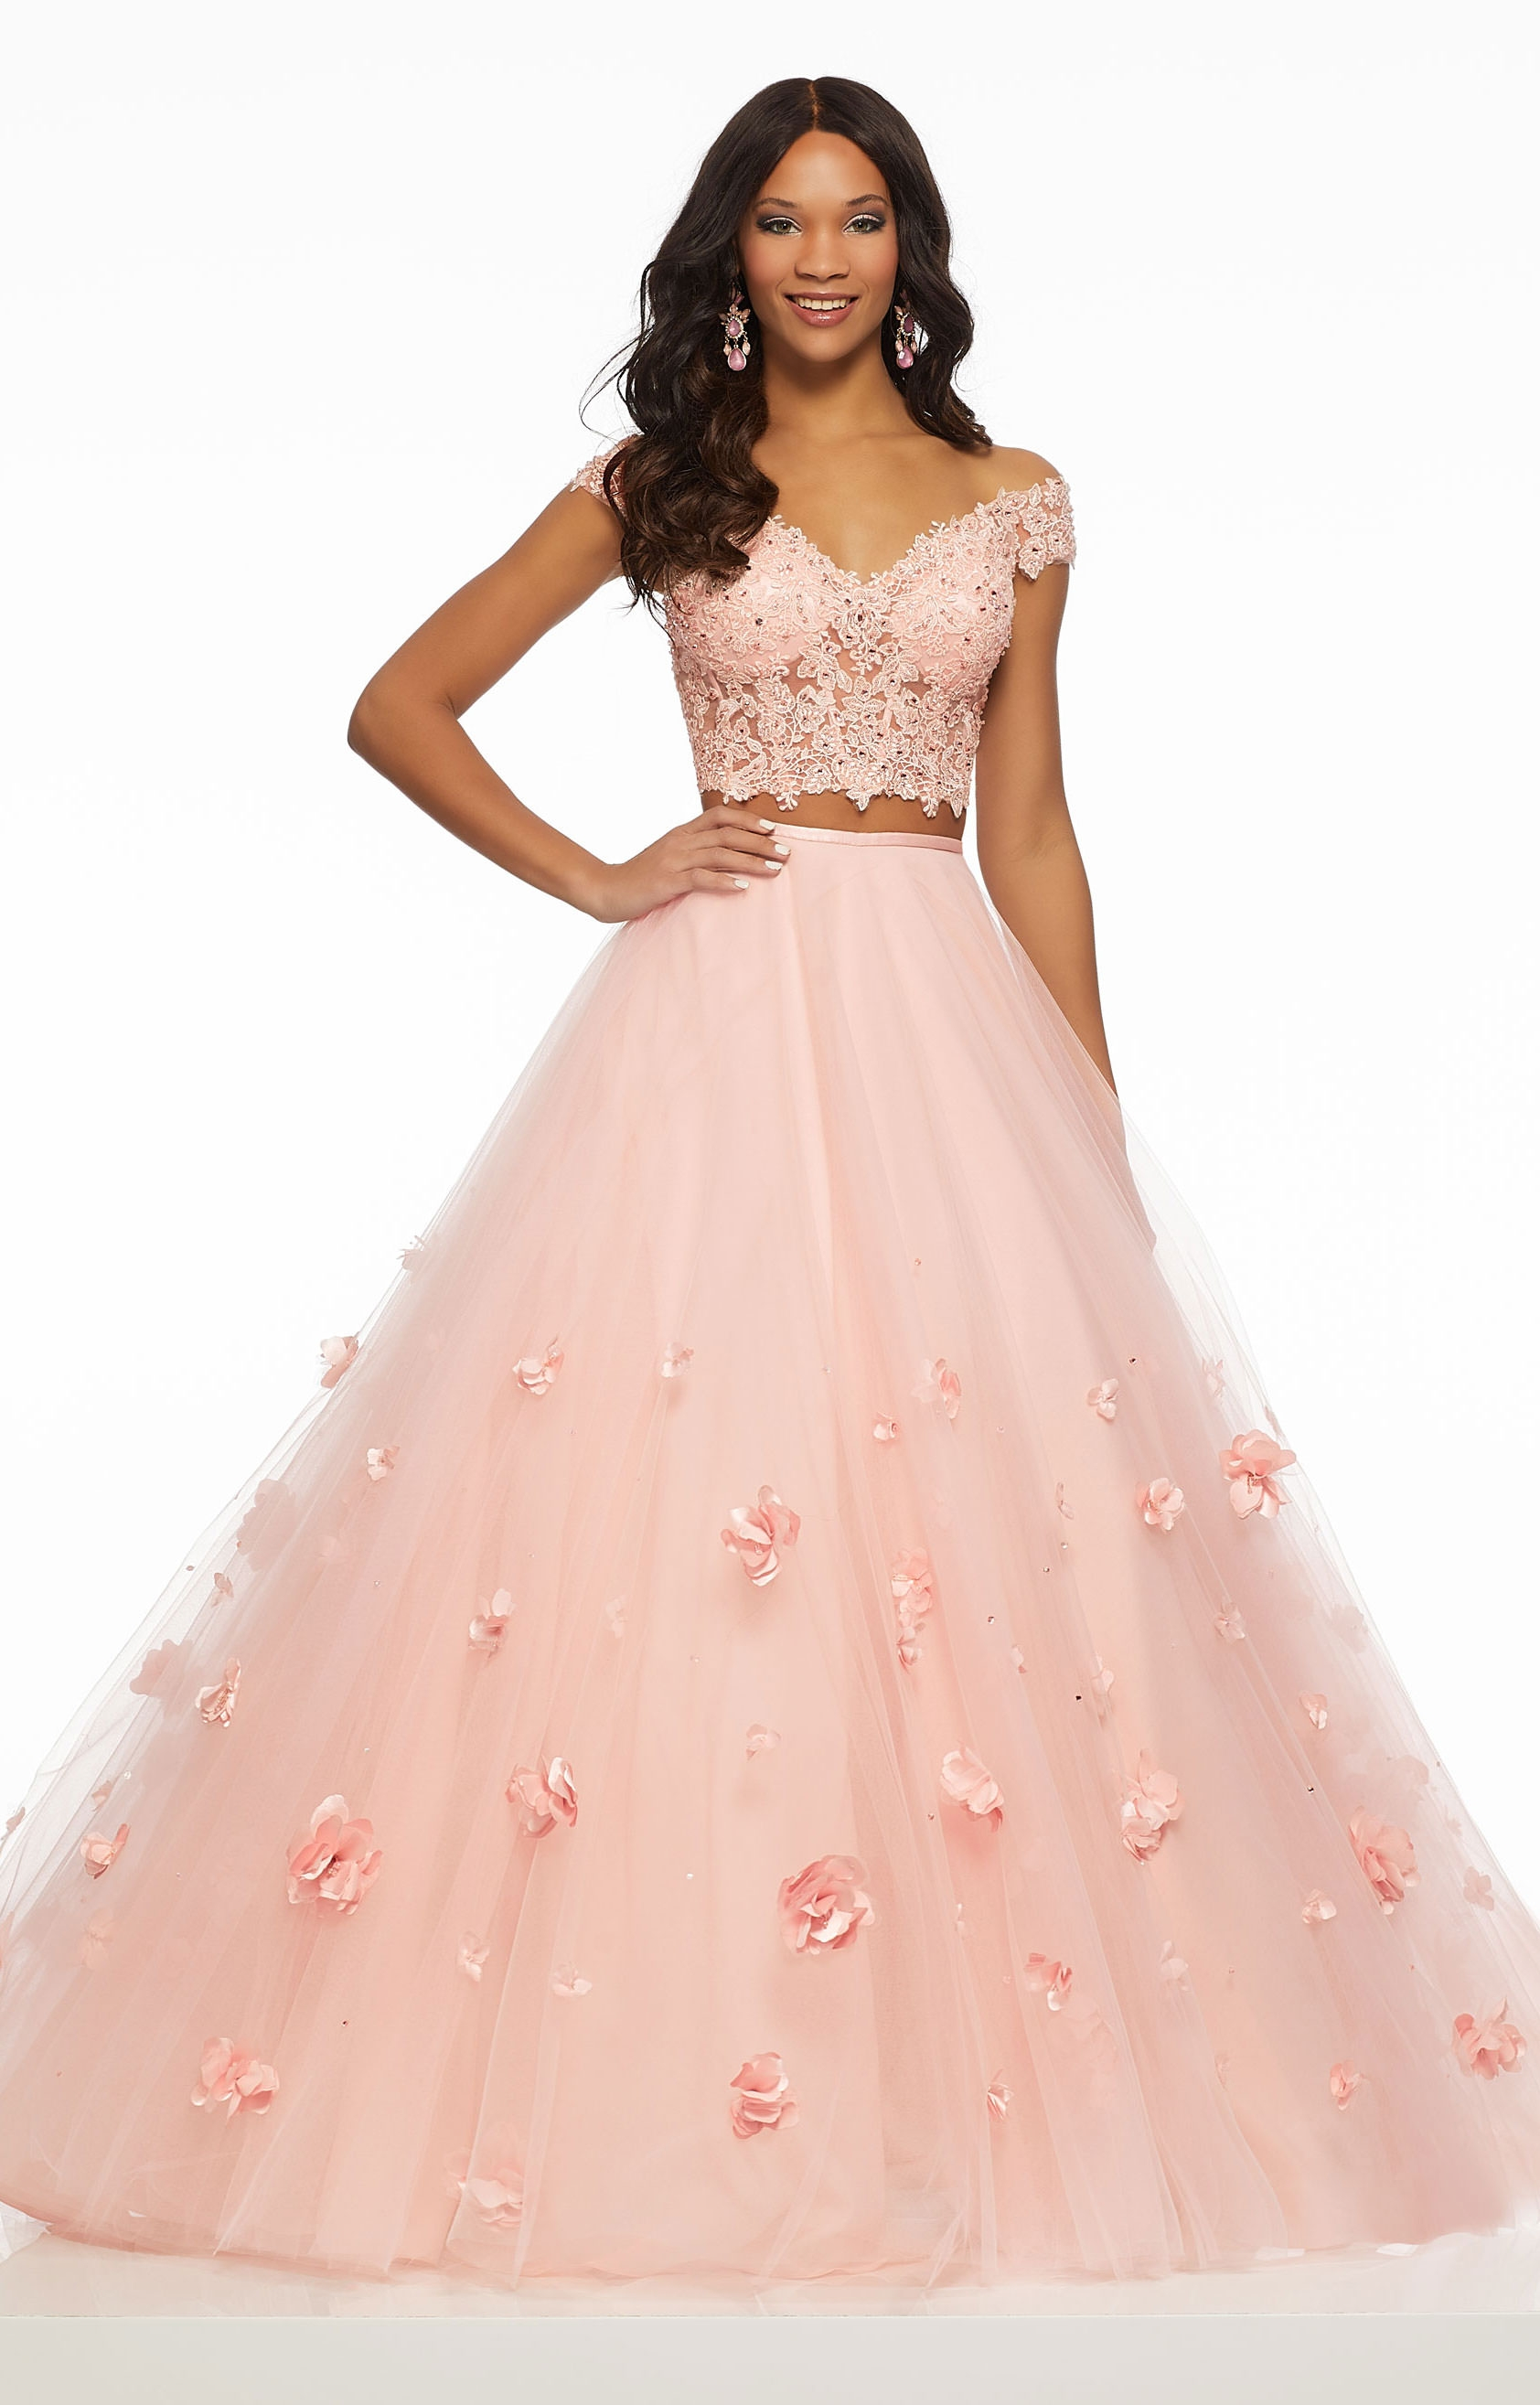 91aed05246 Morilee Prom 43016 - Tulle 3D Floral Ballgown Two-Piece